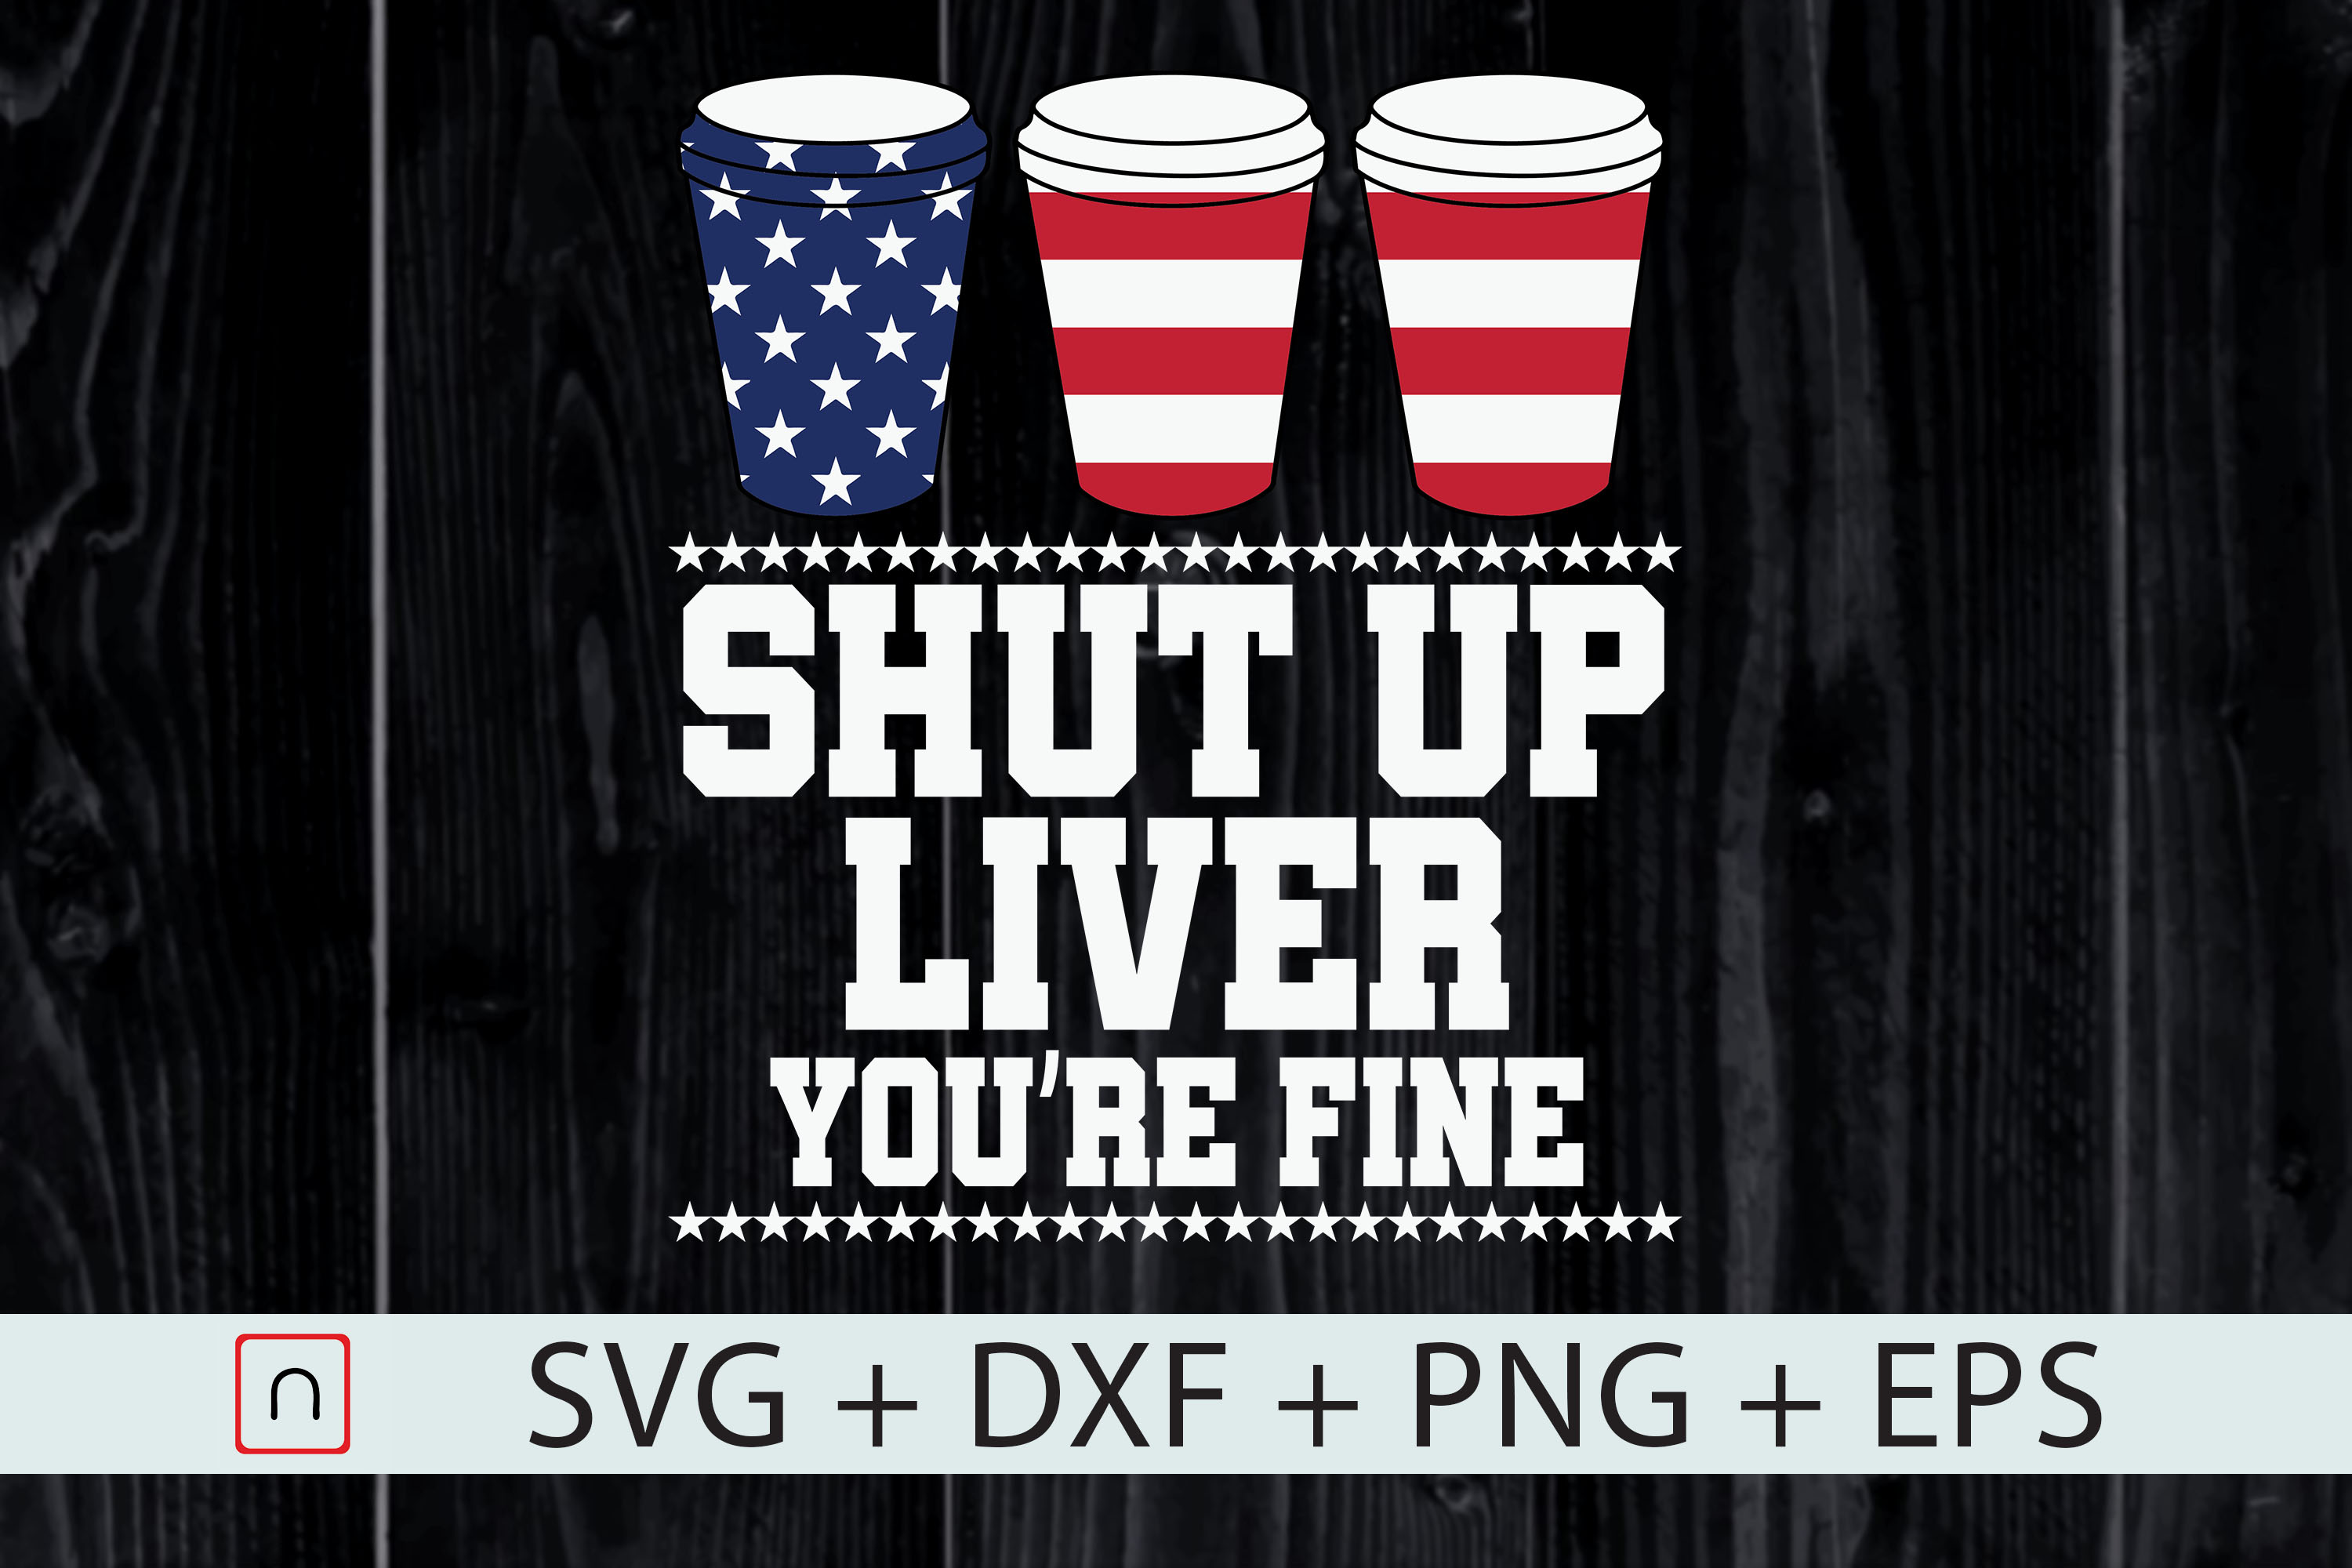 Download Free Shut Up Liver You Are Fine 4th Of July Graphic By Novalia for Cricut Explore, Silhouette and other cutting machines.